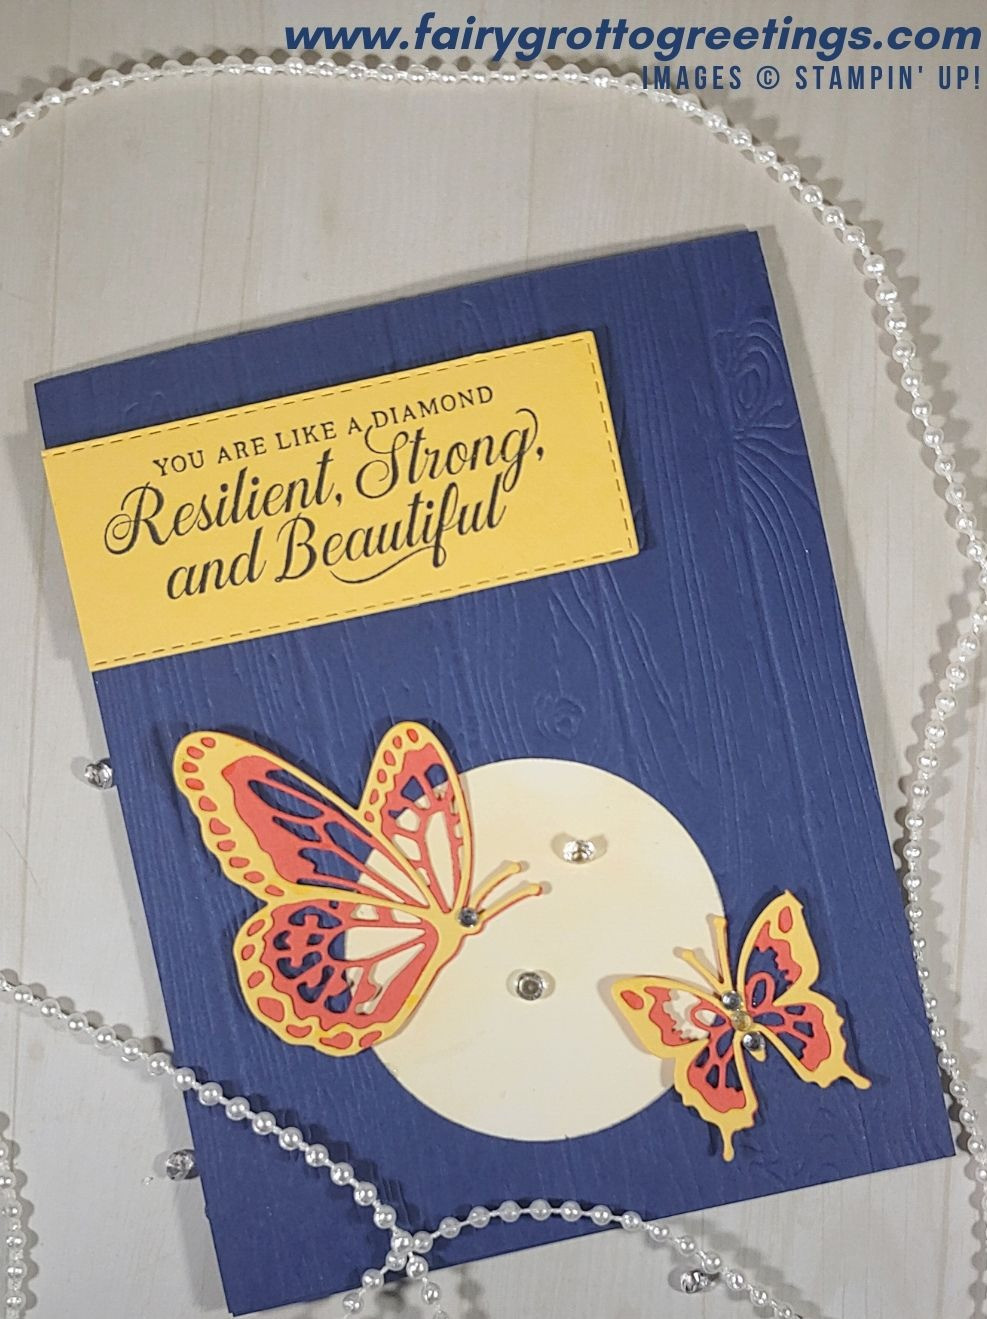 Stampin' Up card image featuring Night of Navy, Terracotta Tile and So Saffron with Butterfly Beauty dies and a sentiment from the Strong & Beautiful stamp set